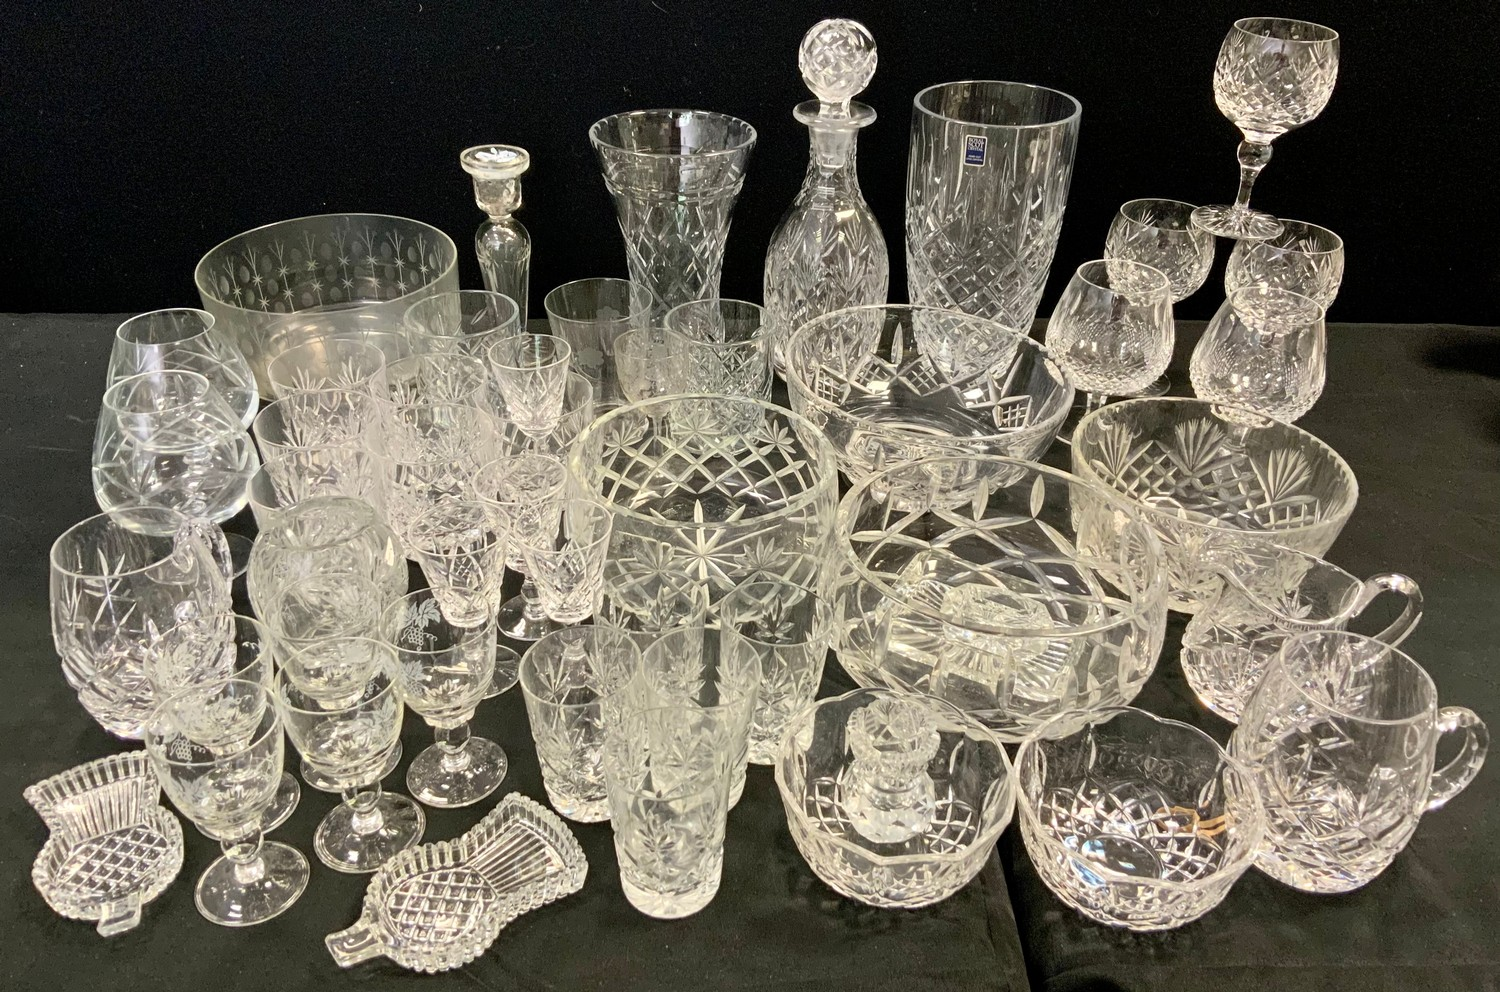 A pair of Waterford crystal brandy glasses; Royal Scot vase, engraved glass fruit bowl; others;